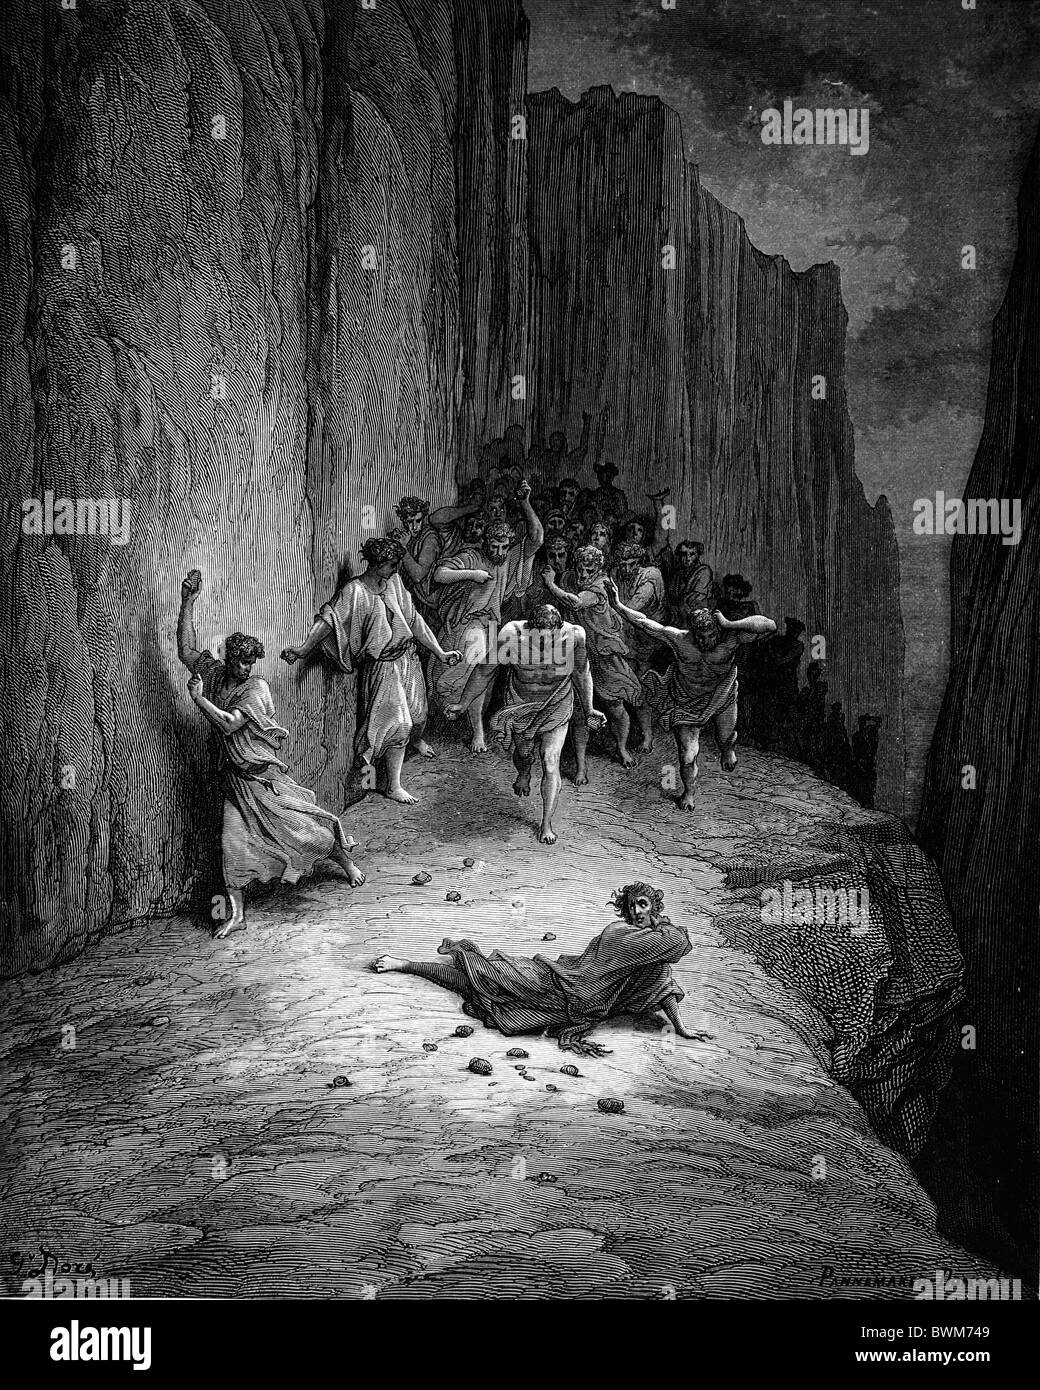 Gustave Doré; Black and White Engraving; The Martyrdom of Saint Stephen, first Christian martyr - Stock Image